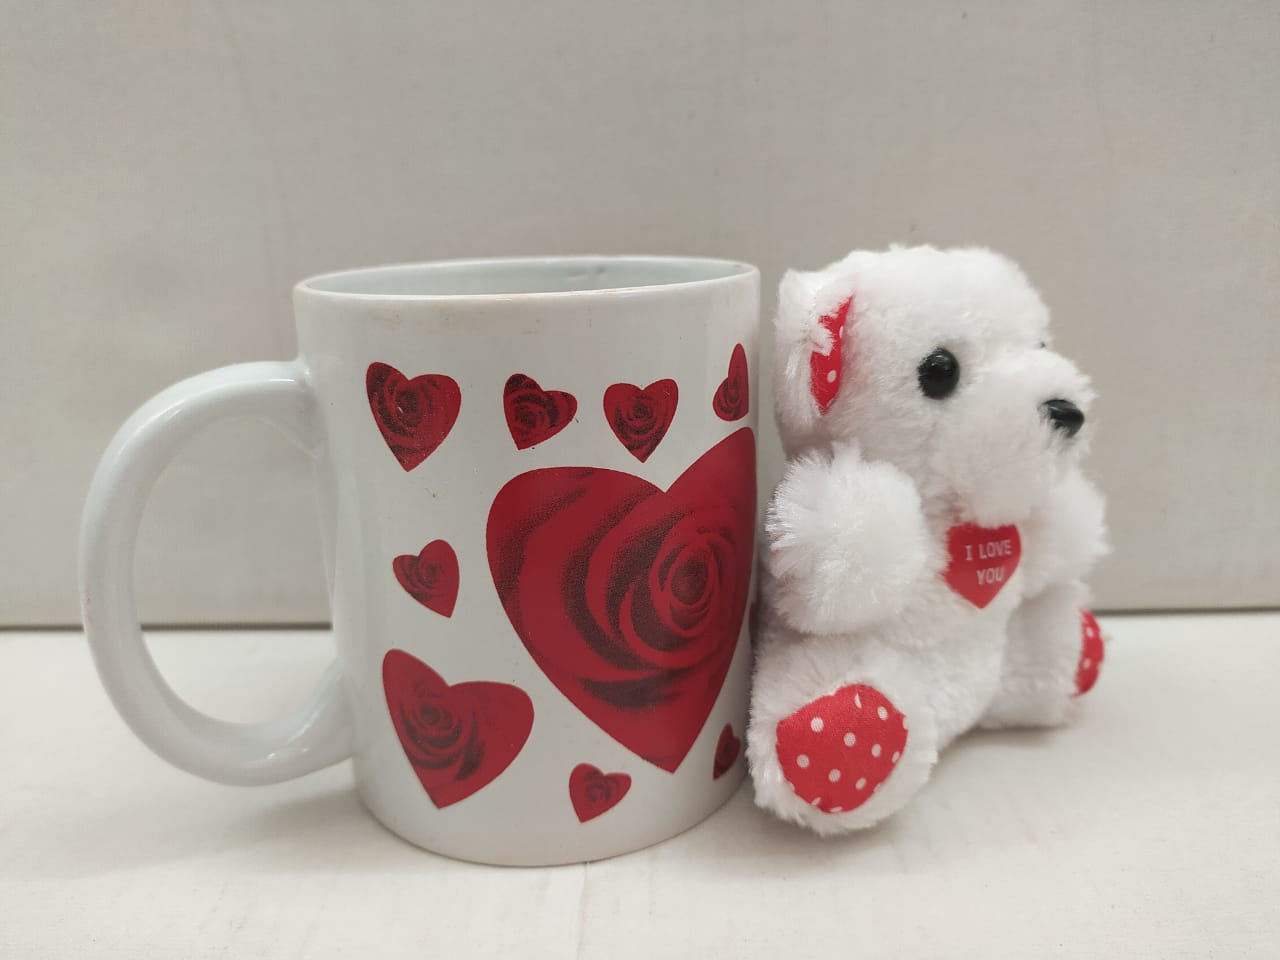 Buy Mug With Heart Roses With Teddy Soft Toy (NY51) Online